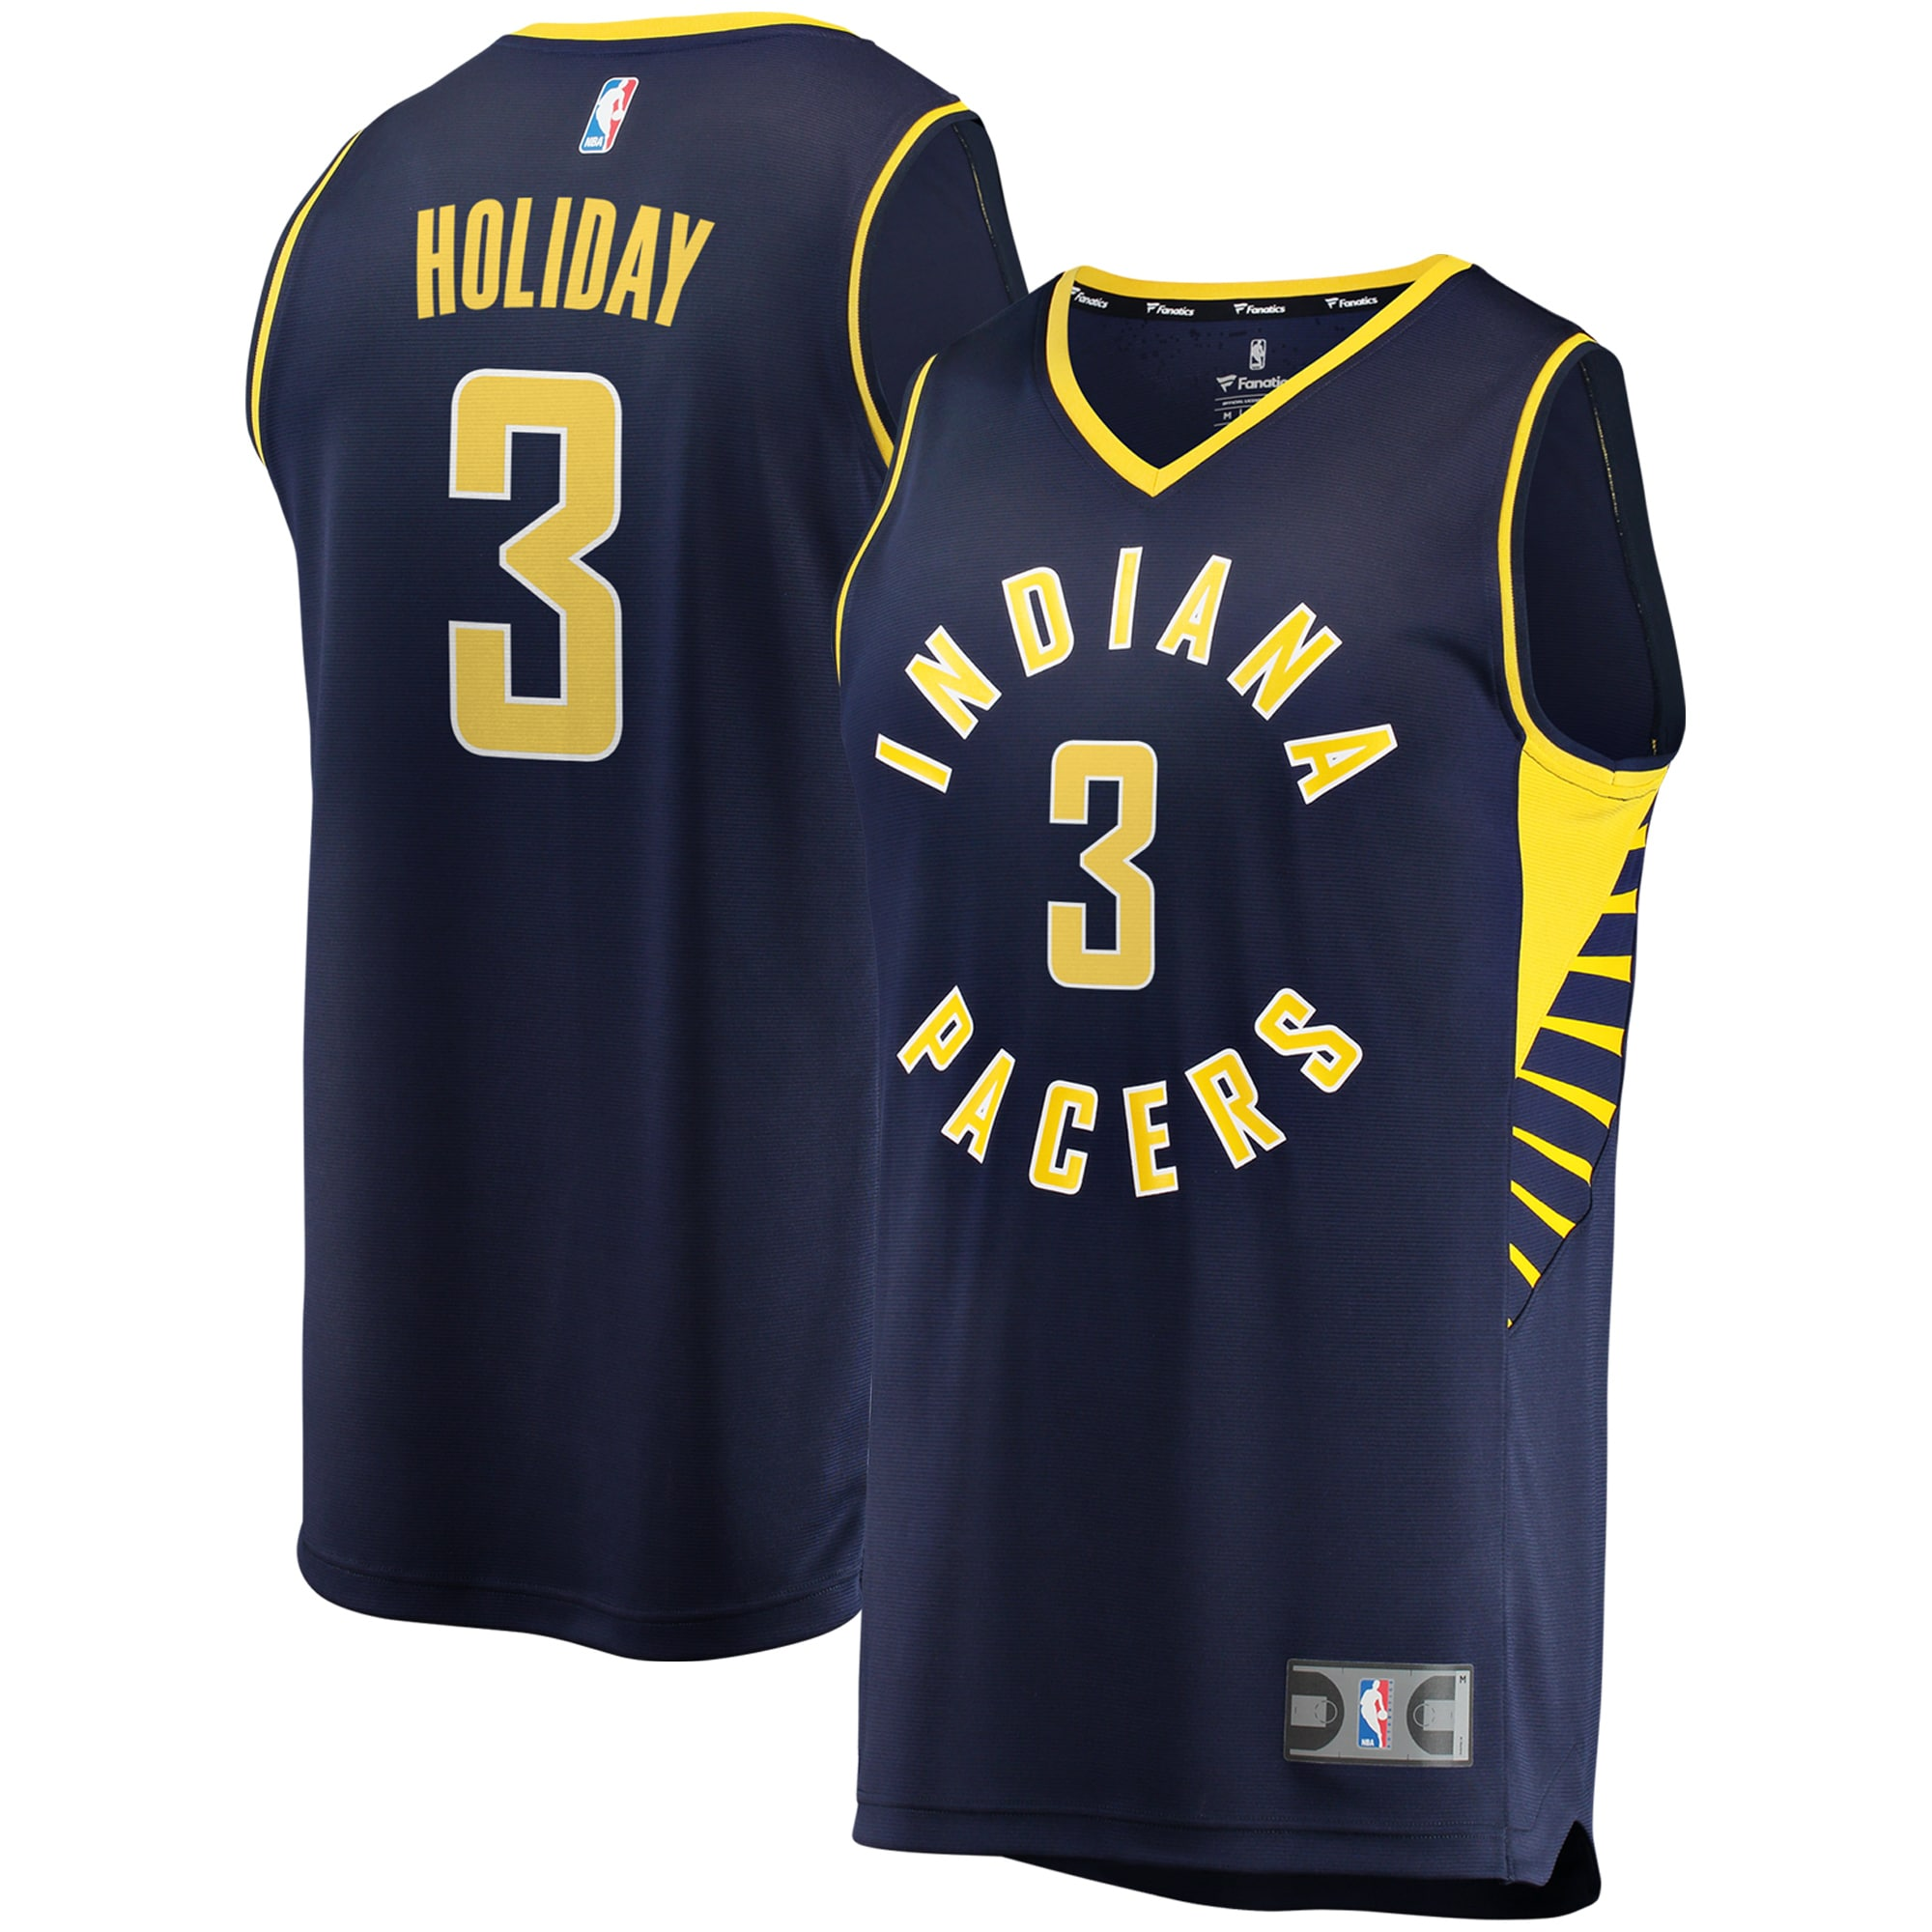 Aaron Holiday Indiana Pacers Fanatics Branded Fast Break Replica Jersey - Icon Edition - Navy